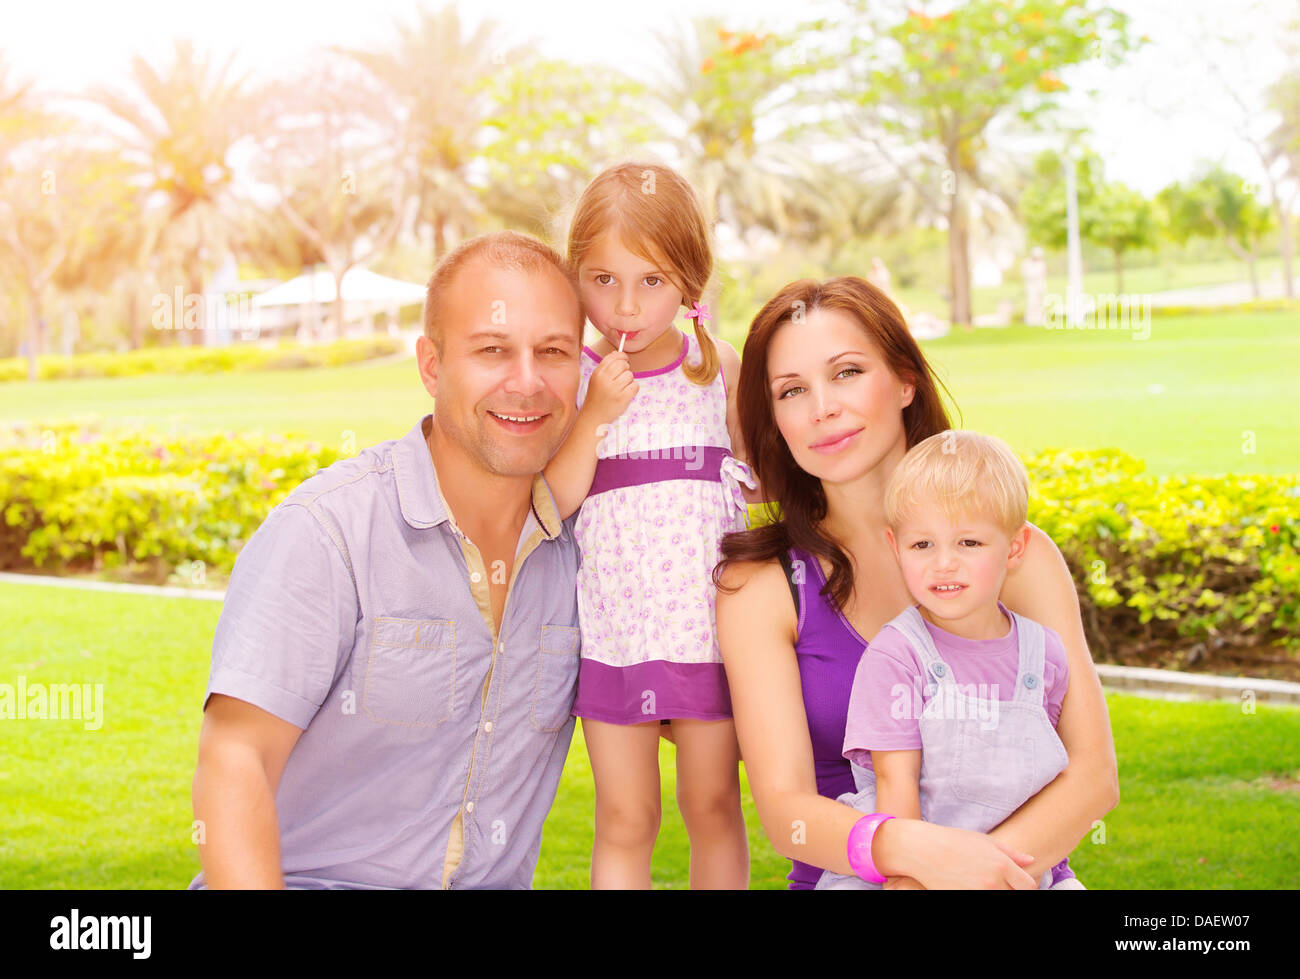 Portrait of cute family in spending time together in the park, happy young parents with two adorable child outdoors - Stock Image